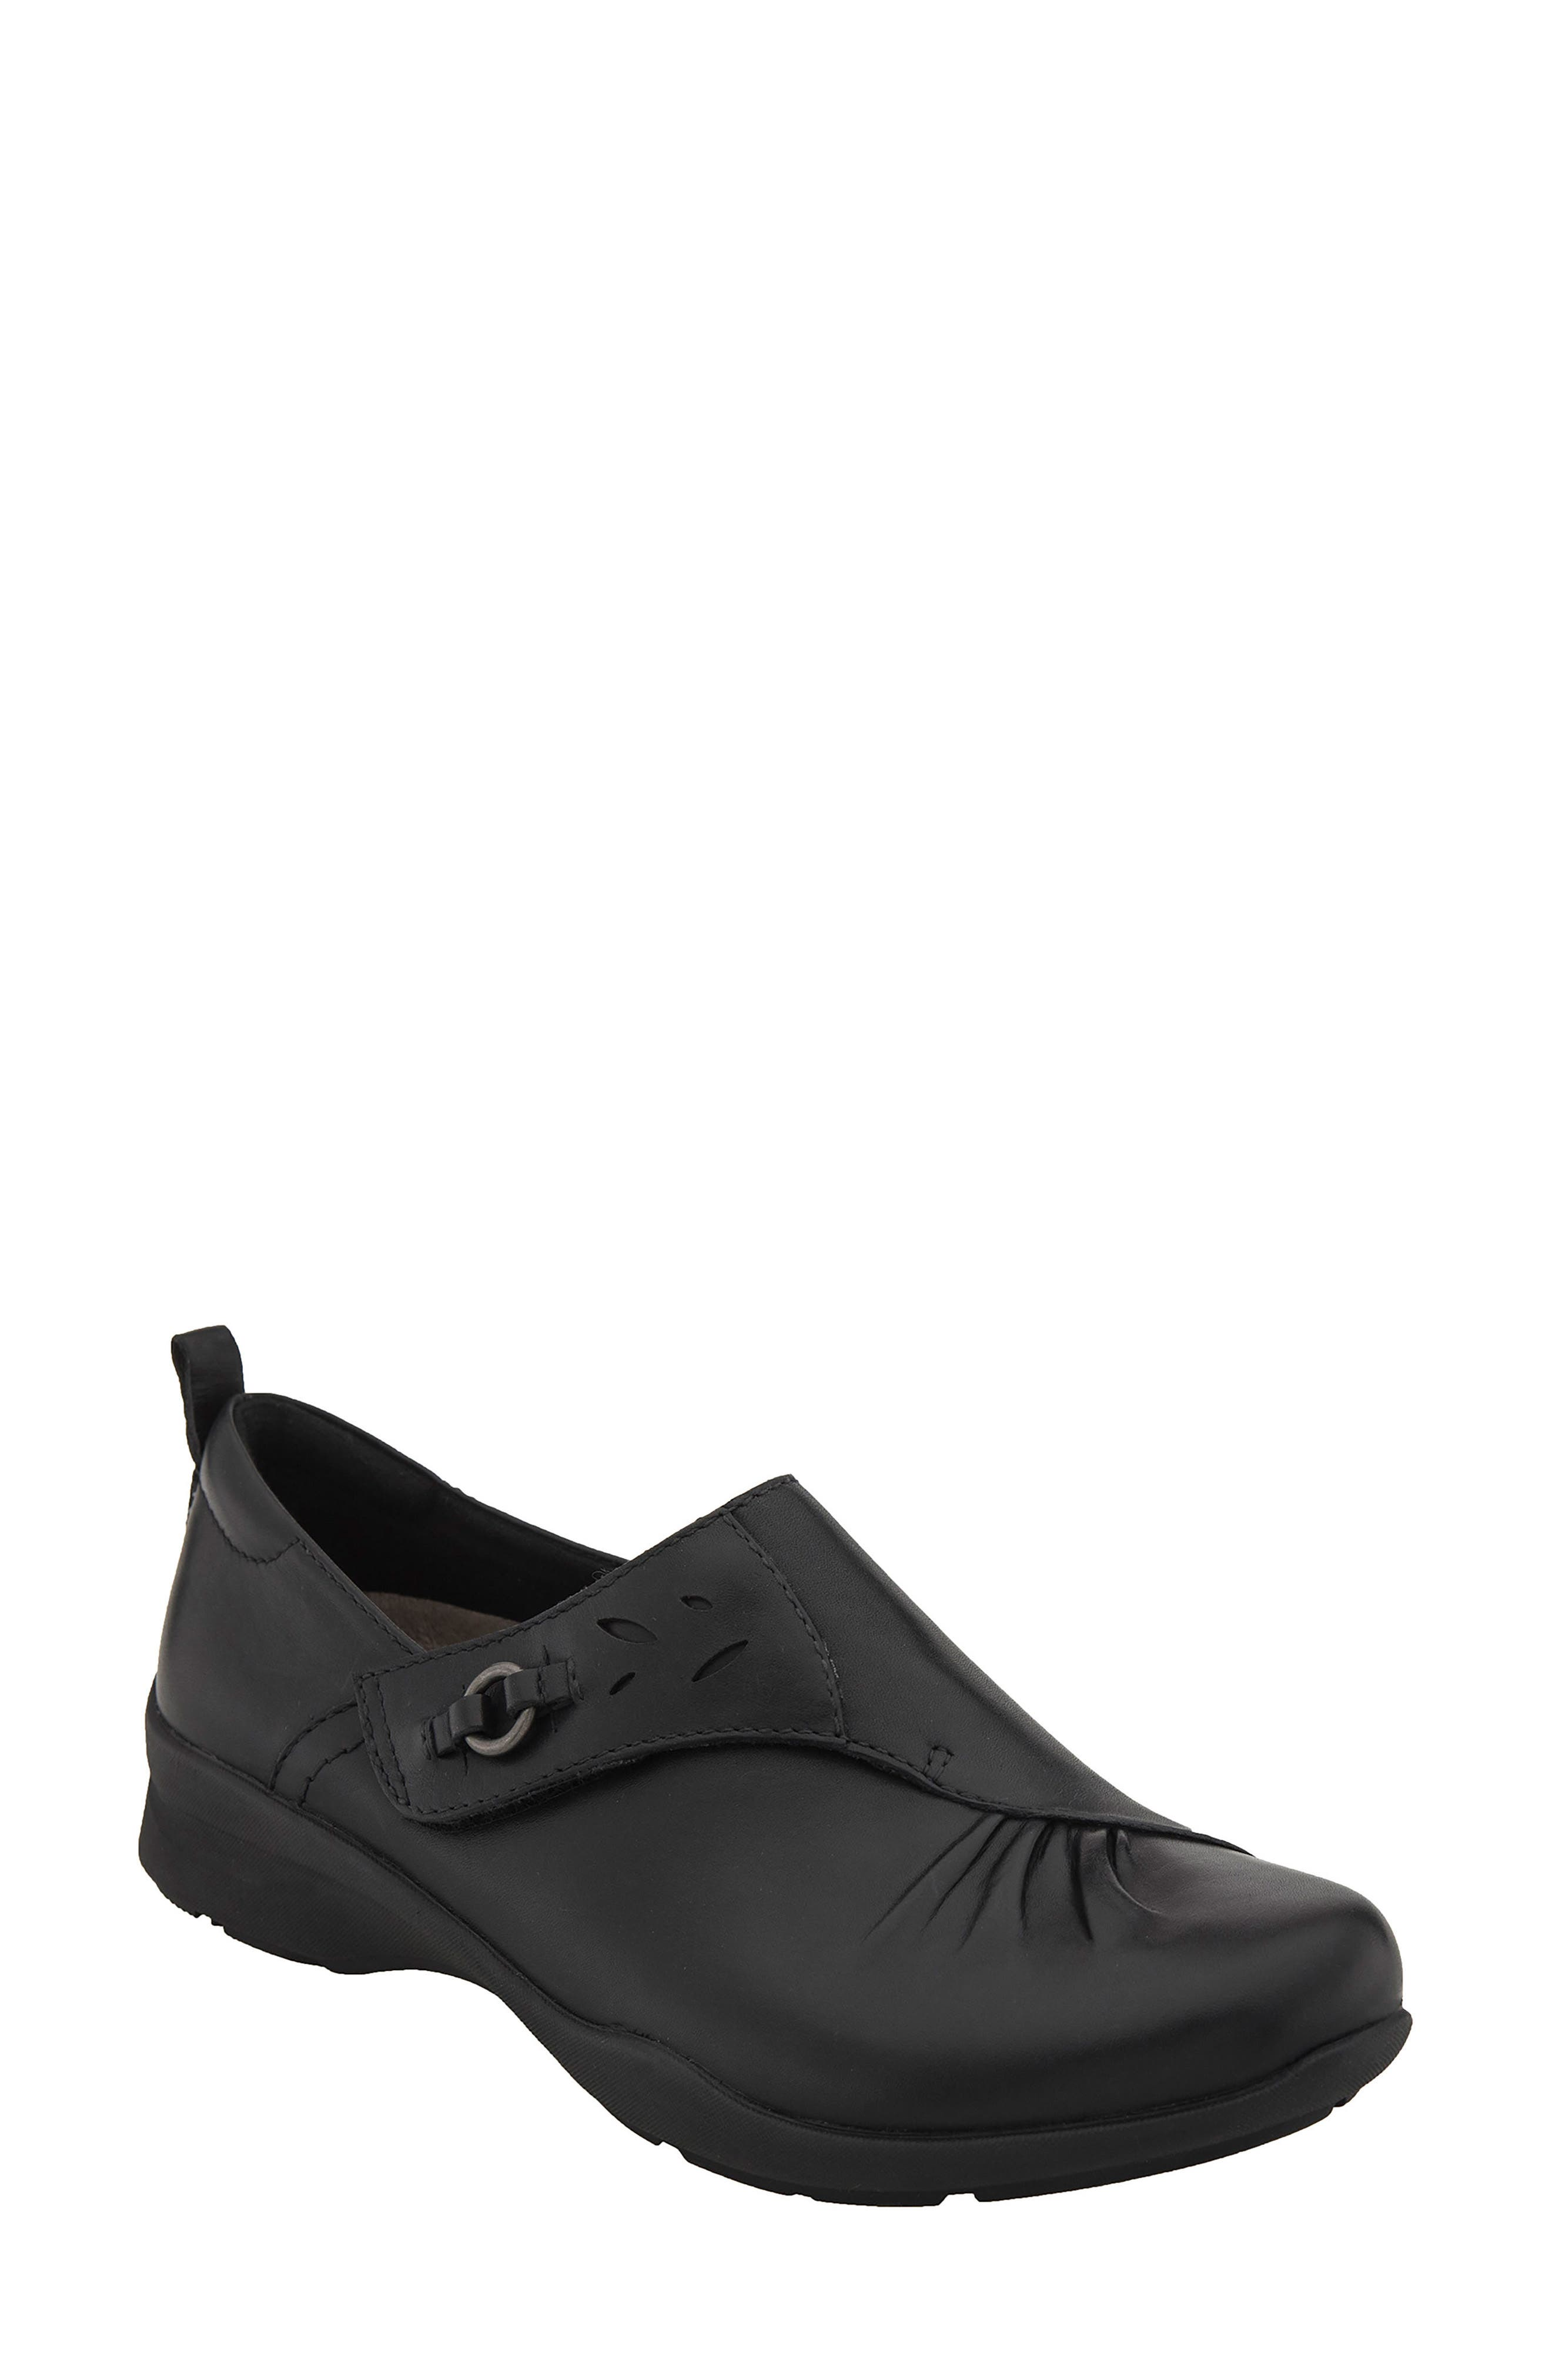 Main Image - Earth® Amity Loafer (Women)